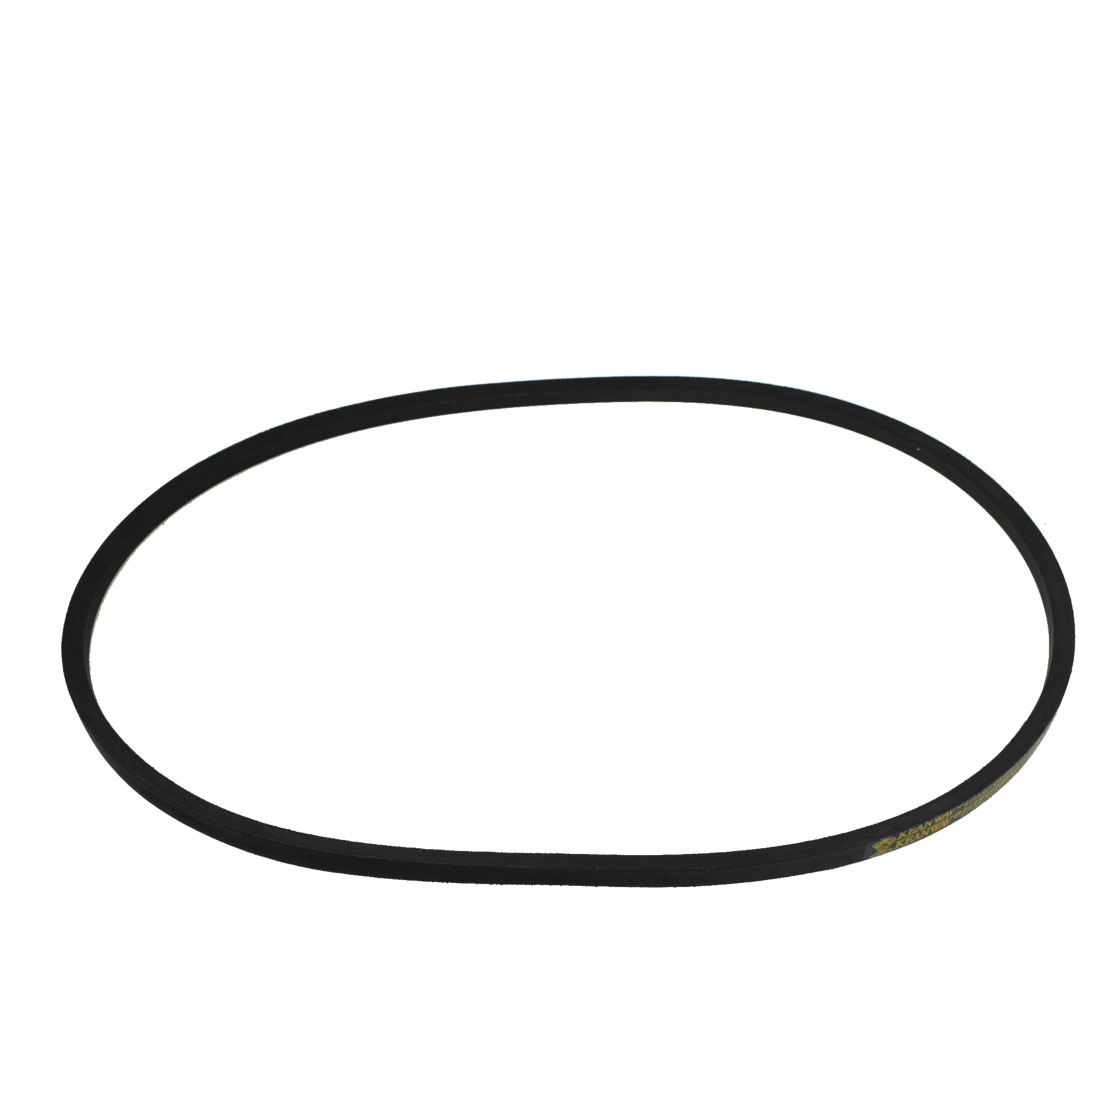 uxcell/® B80 11mm Thick 80-inch x 0.67-inch Rubber V-shaped Drive Belt Black